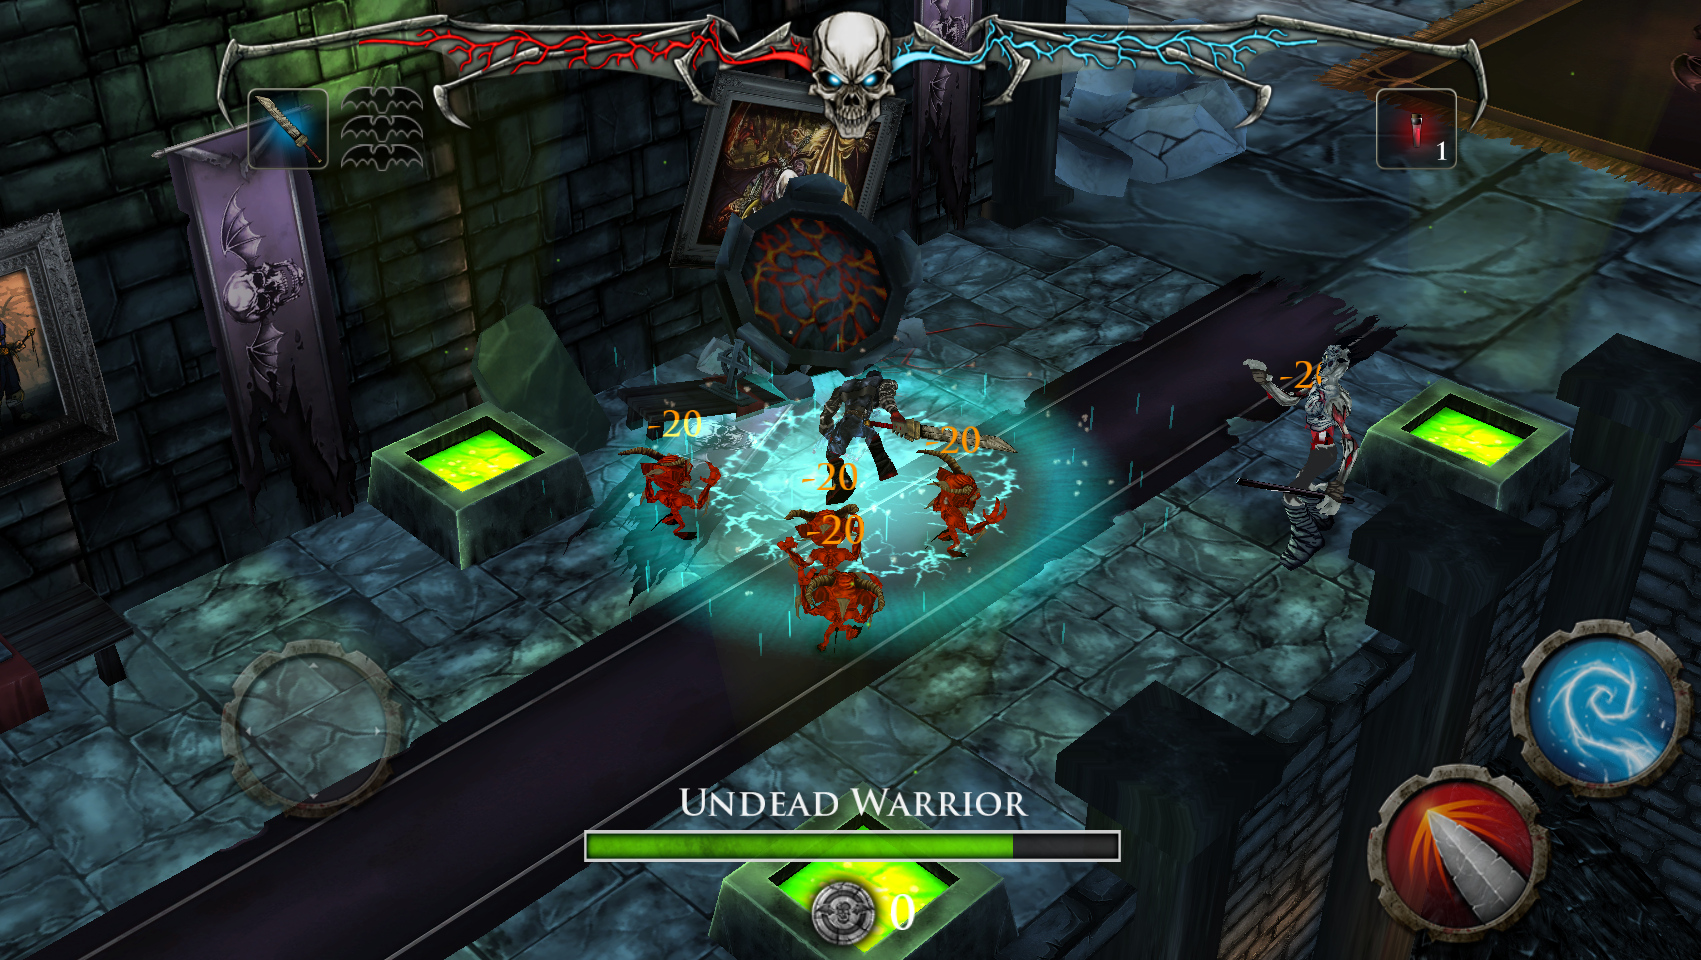 Hail to the King: Deathbat is a hard rock RPG from Avenged Sevenfold